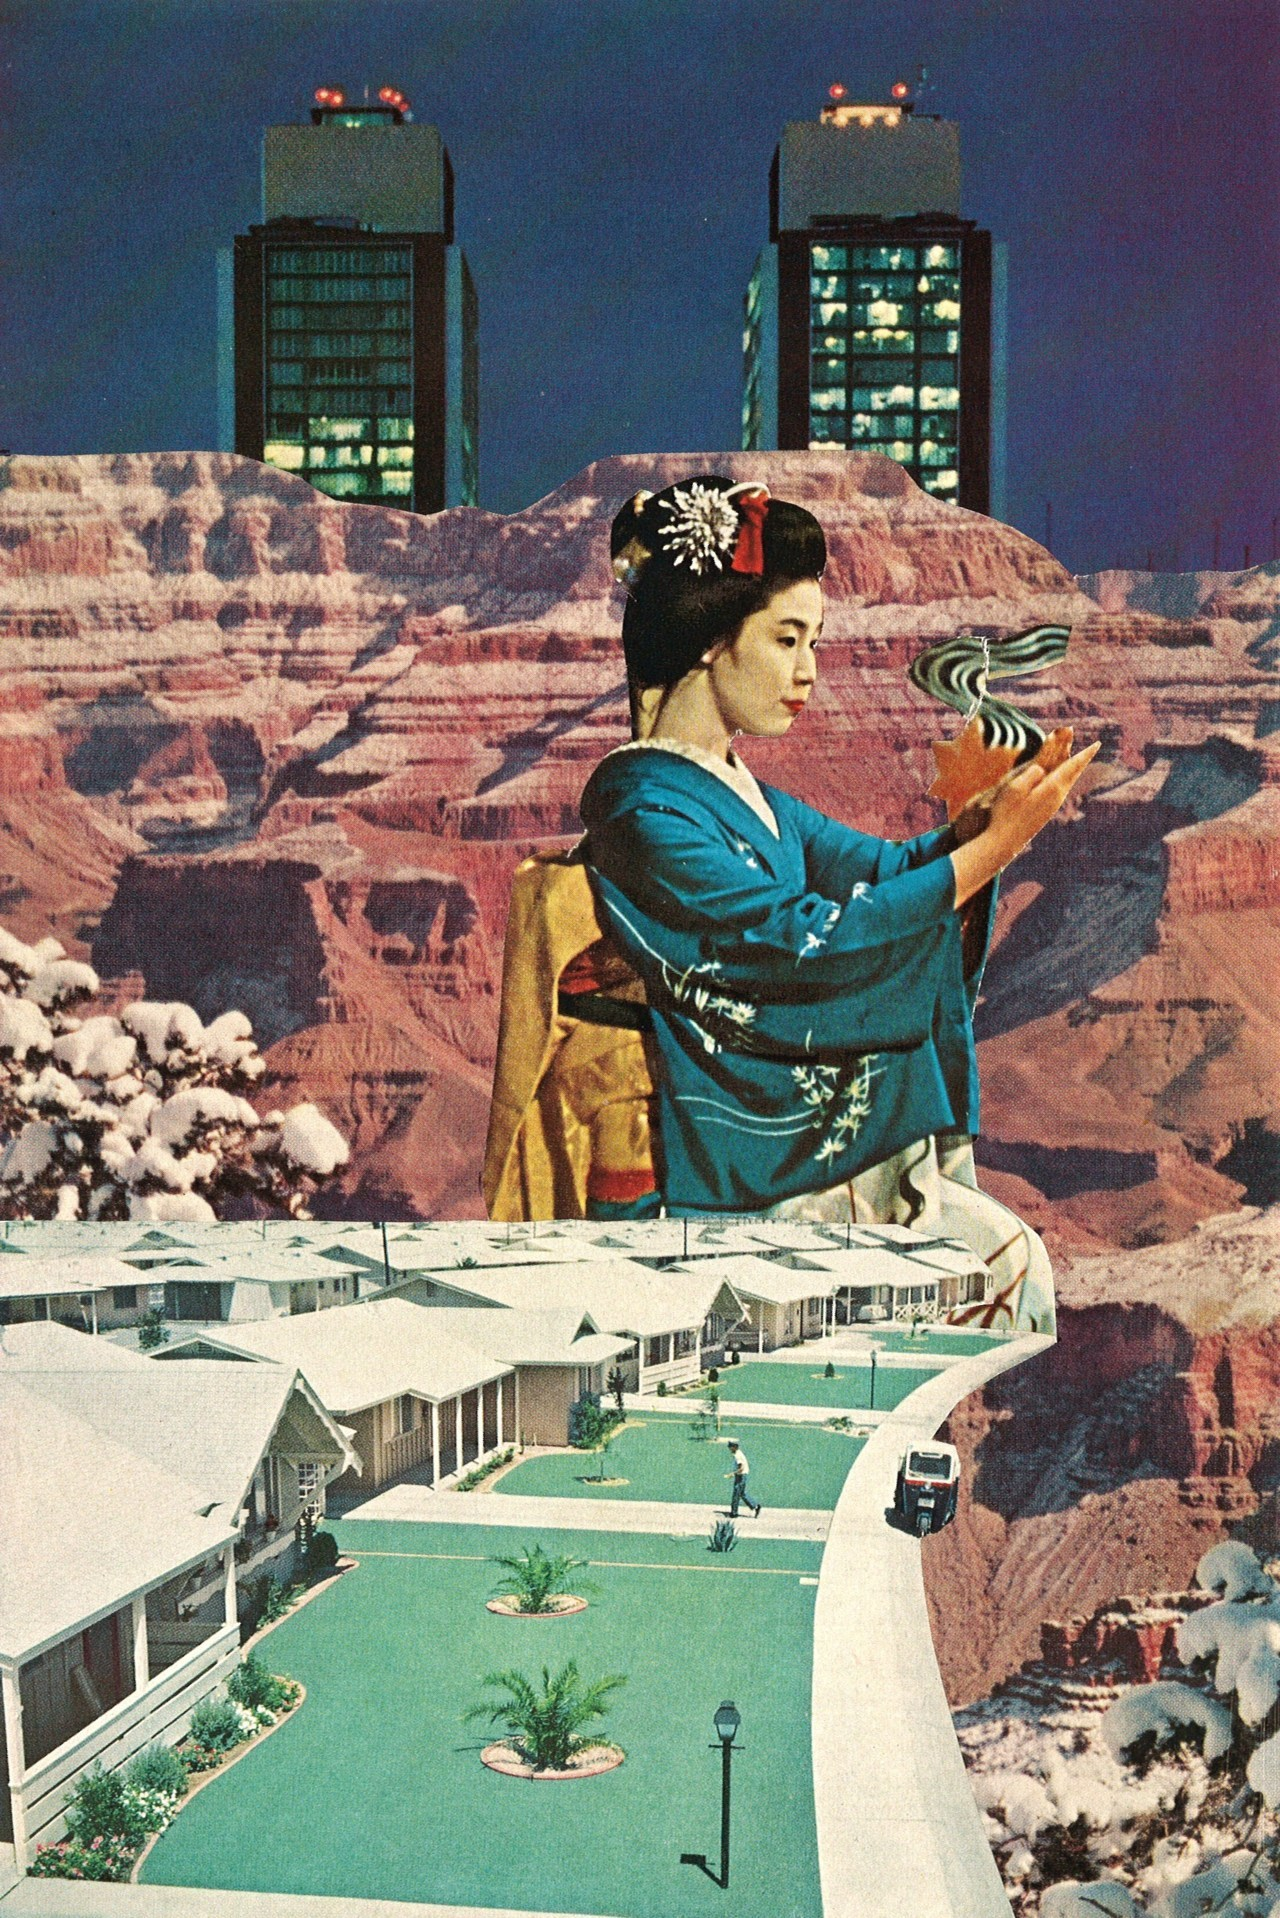 www.society6.com/artist/collageartbyjessewww.collageartbyjesse.tumblr.comwww.facebook.com/collageartbyjessewww.twitter.com/jessetreece